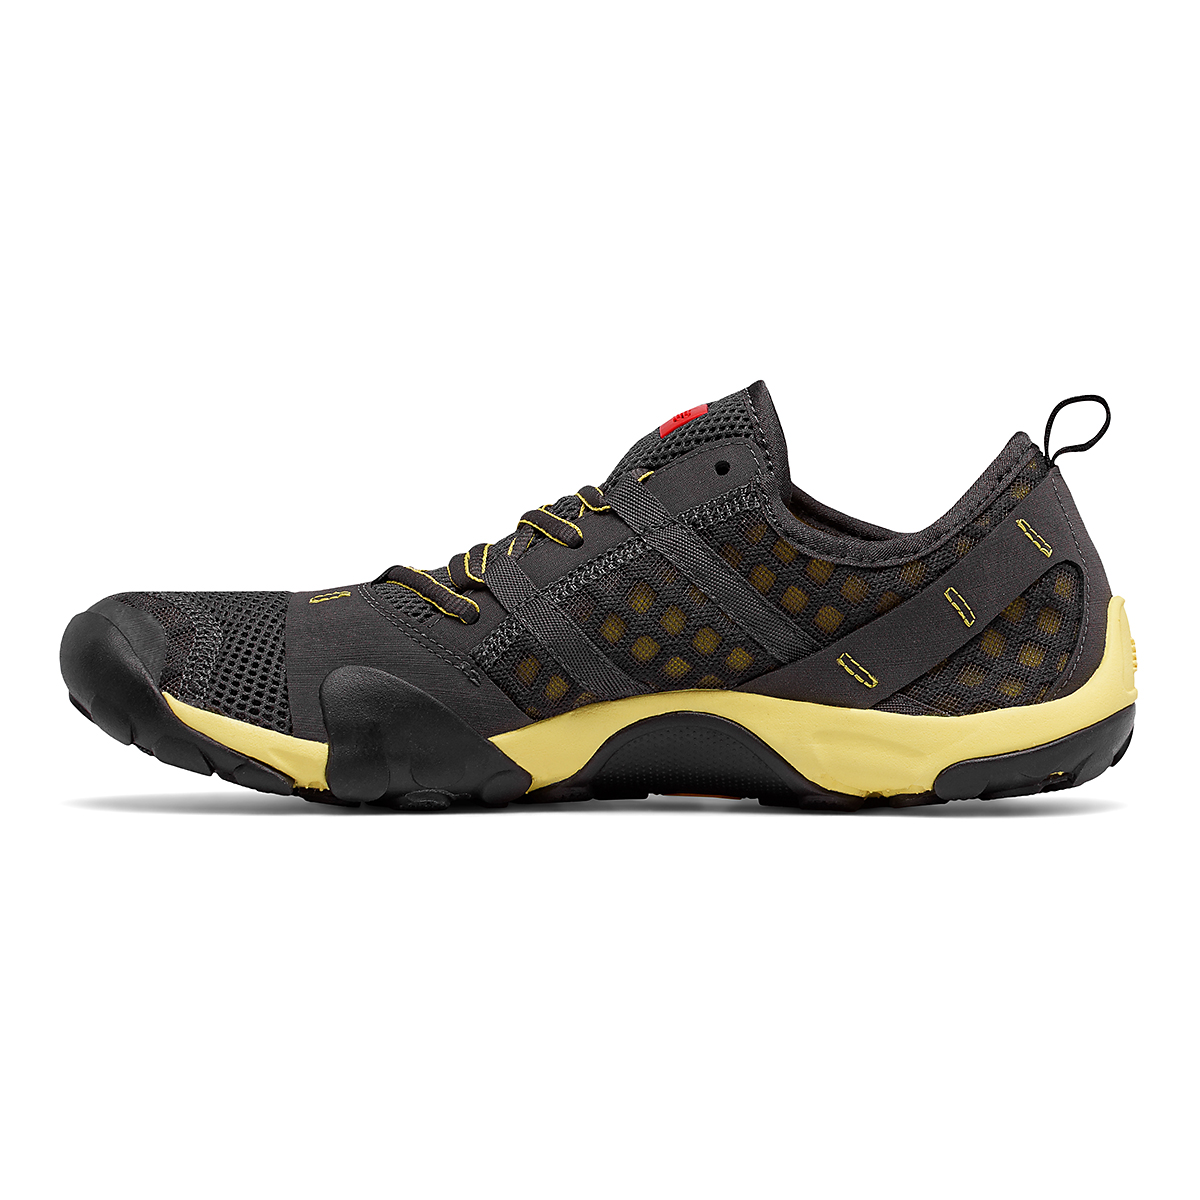 Men's New Balance Minimus T10V1 Trail Running Shoe - Color: Grey/Yellow - Size: 5 - Width: Wide, Grey/Yellow, large, image 2